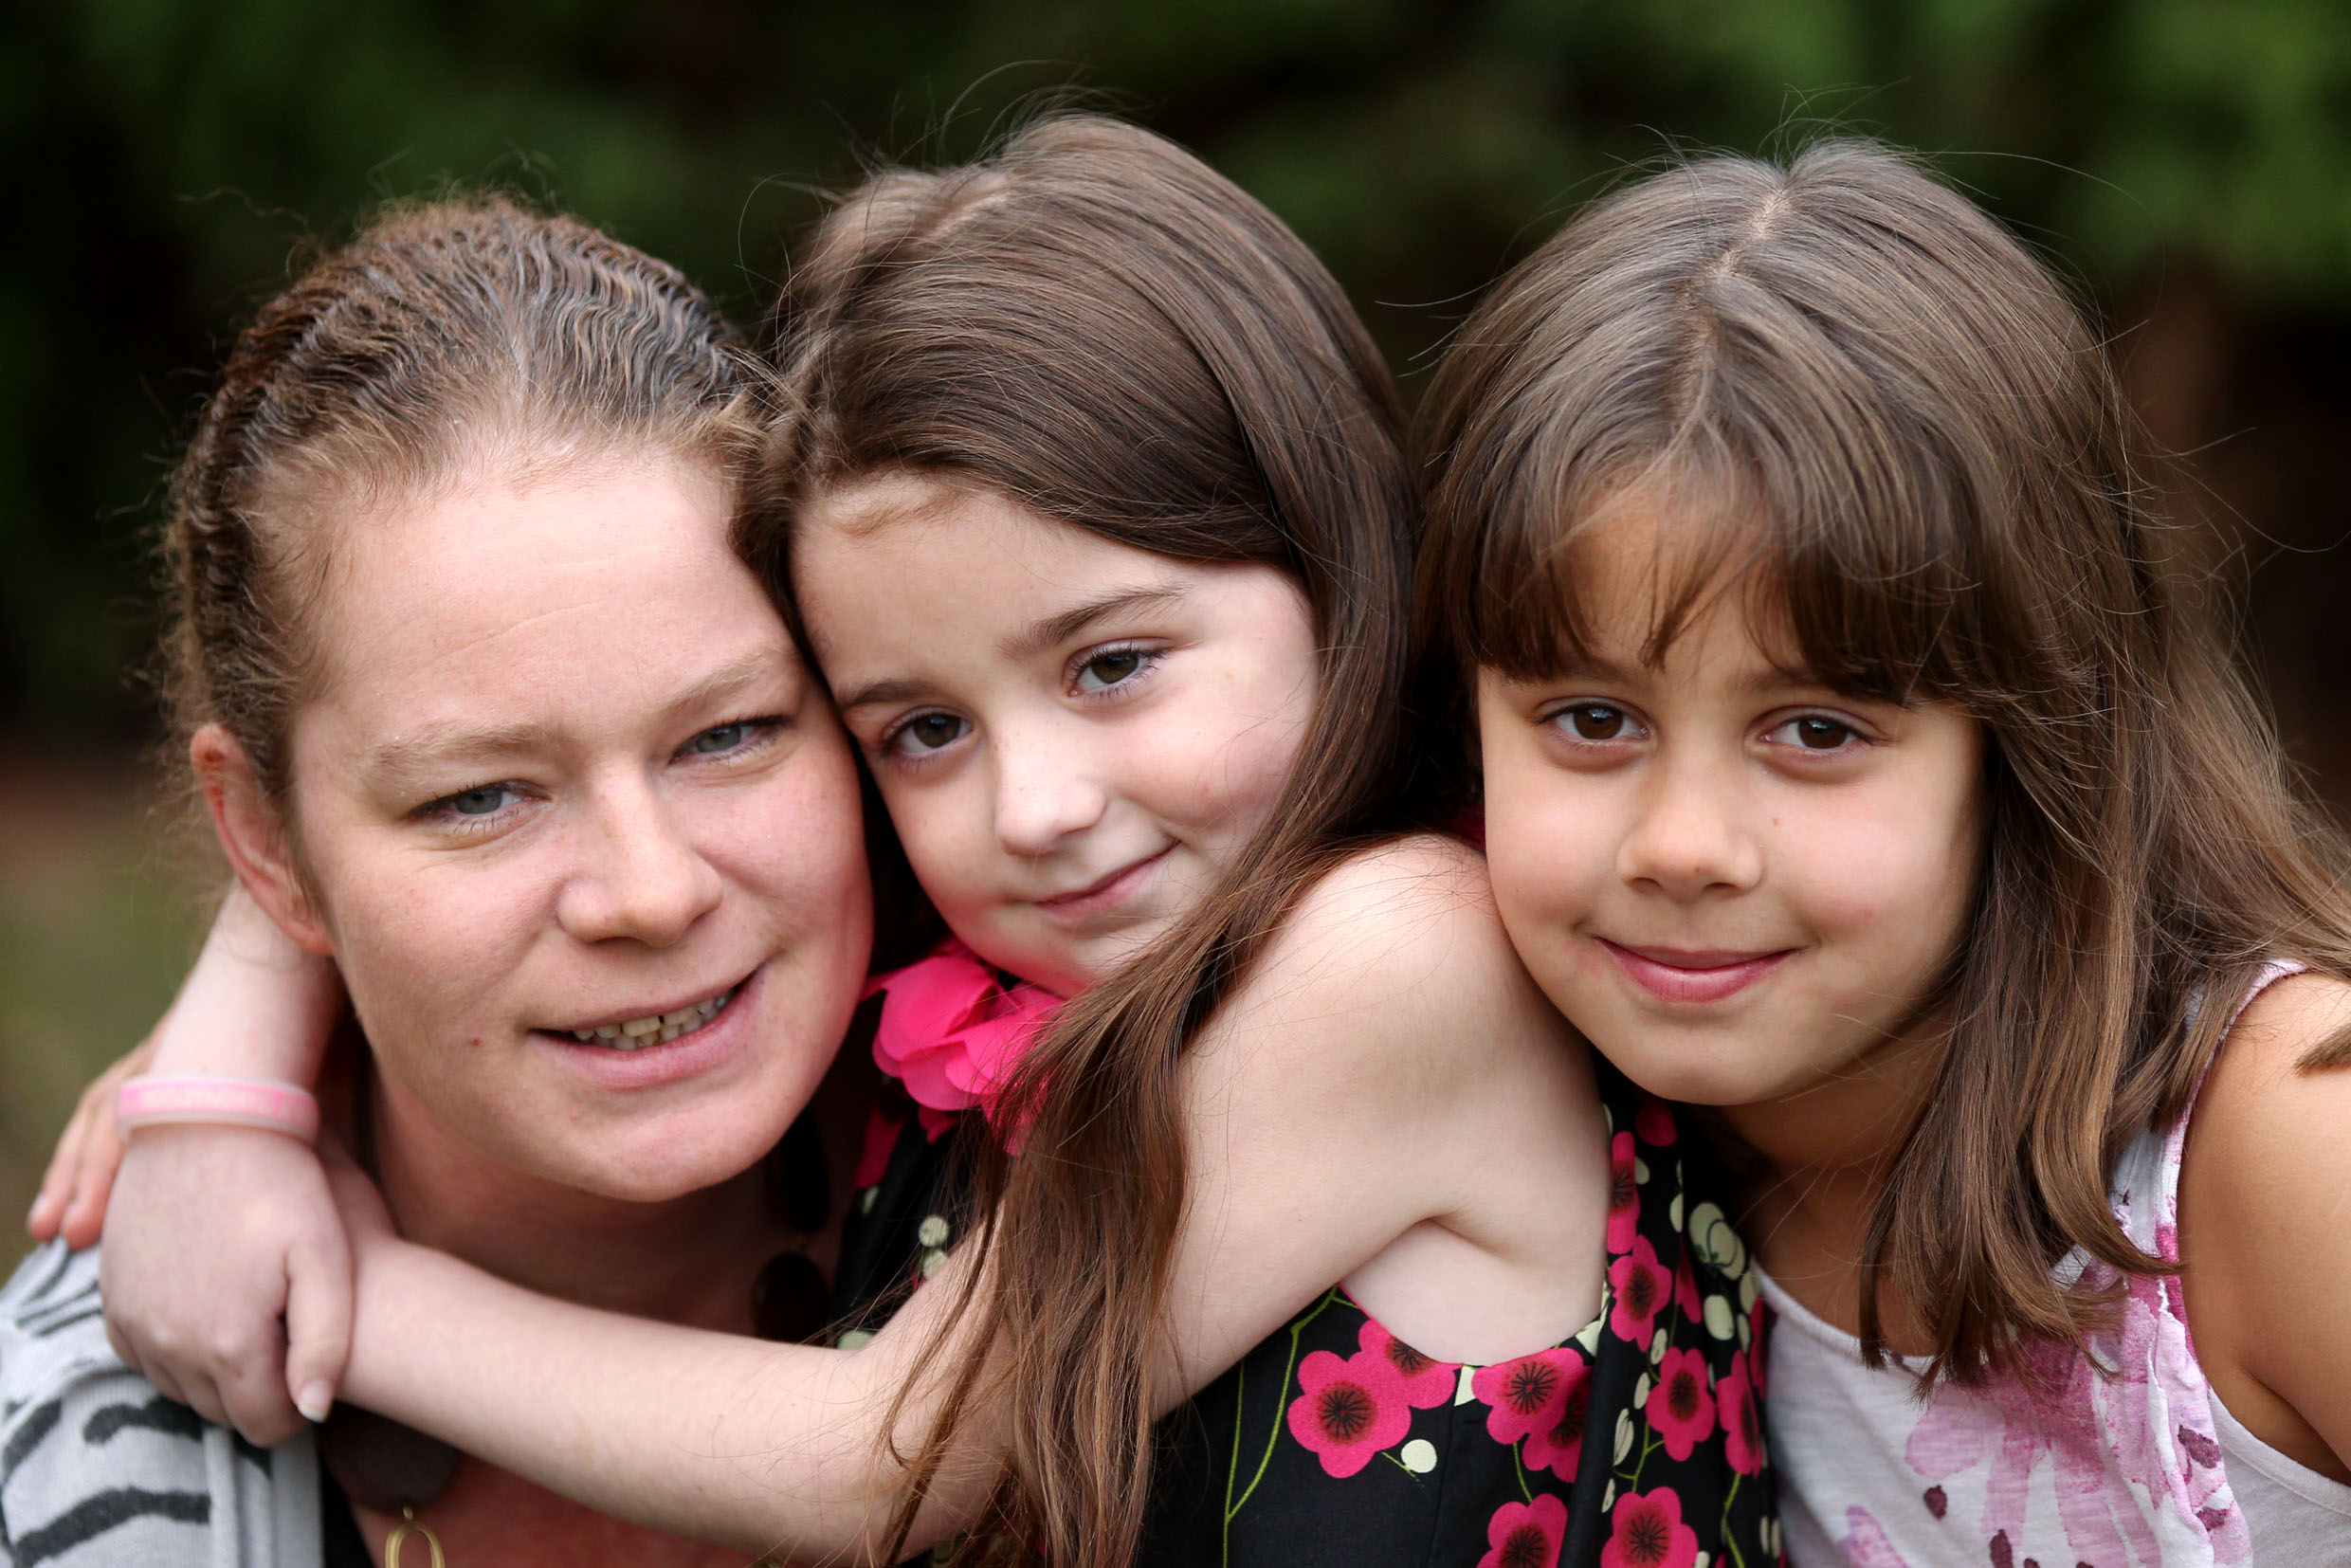 Holly Dougill-Brooks, has a benign brain tumour and is going to the US for treatment.